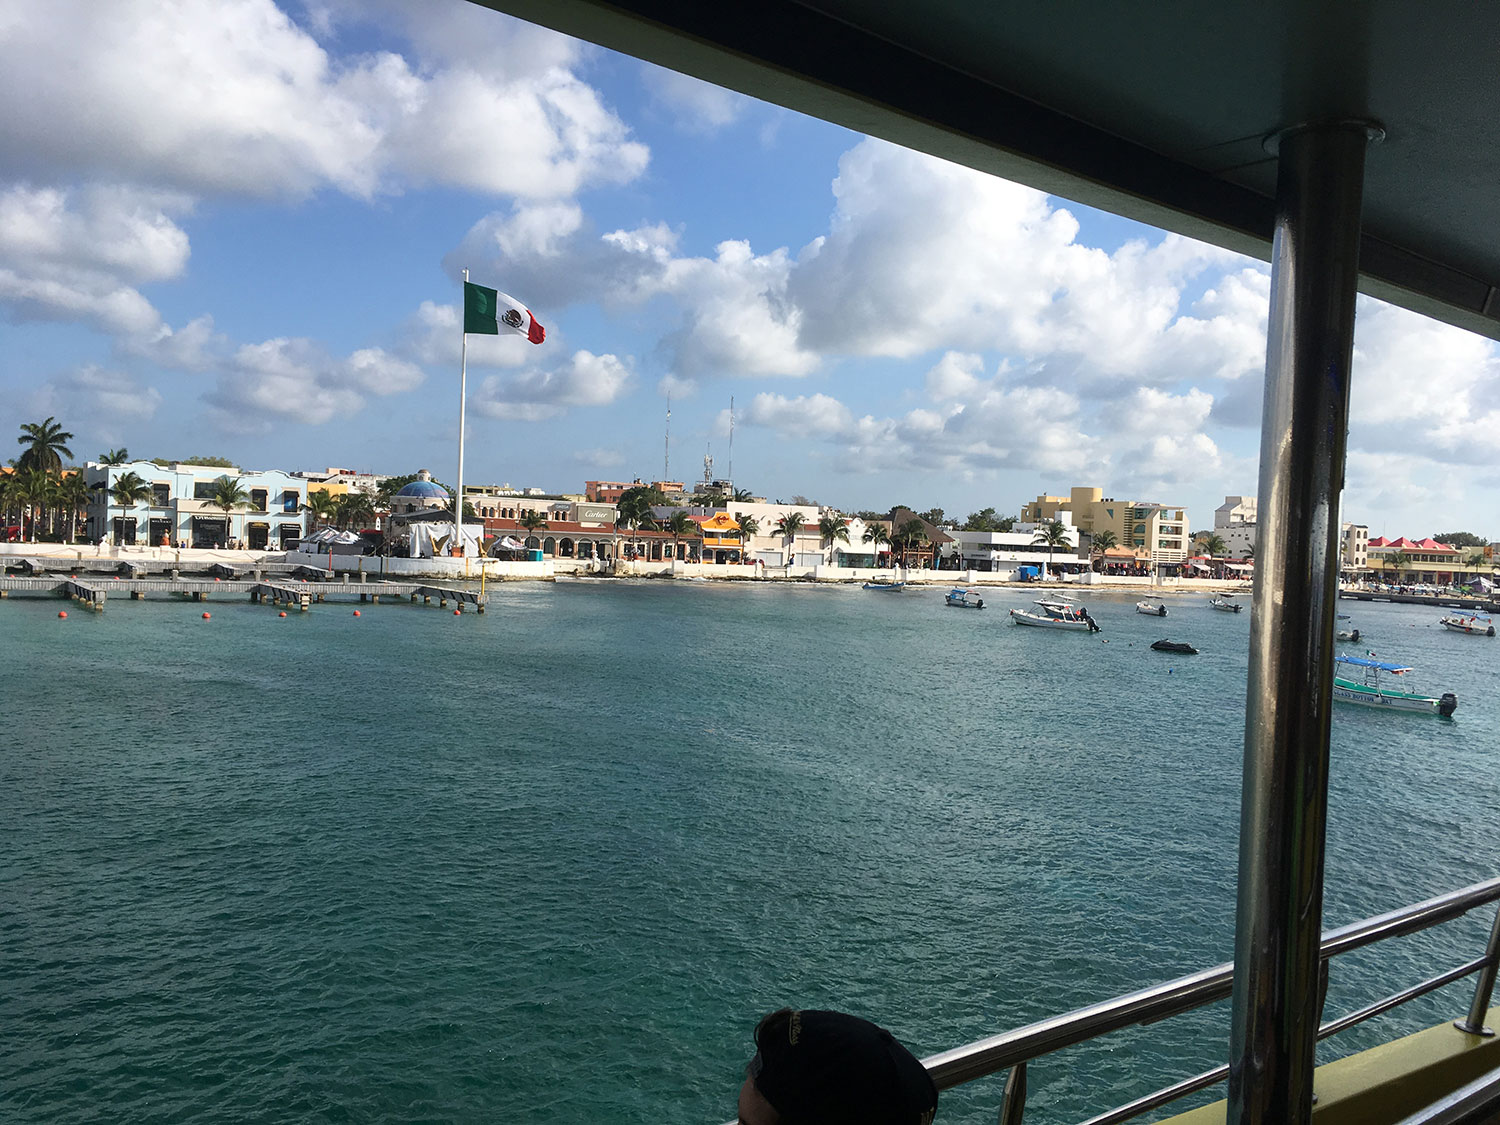 Cozumel as seen on arrival by ferry.